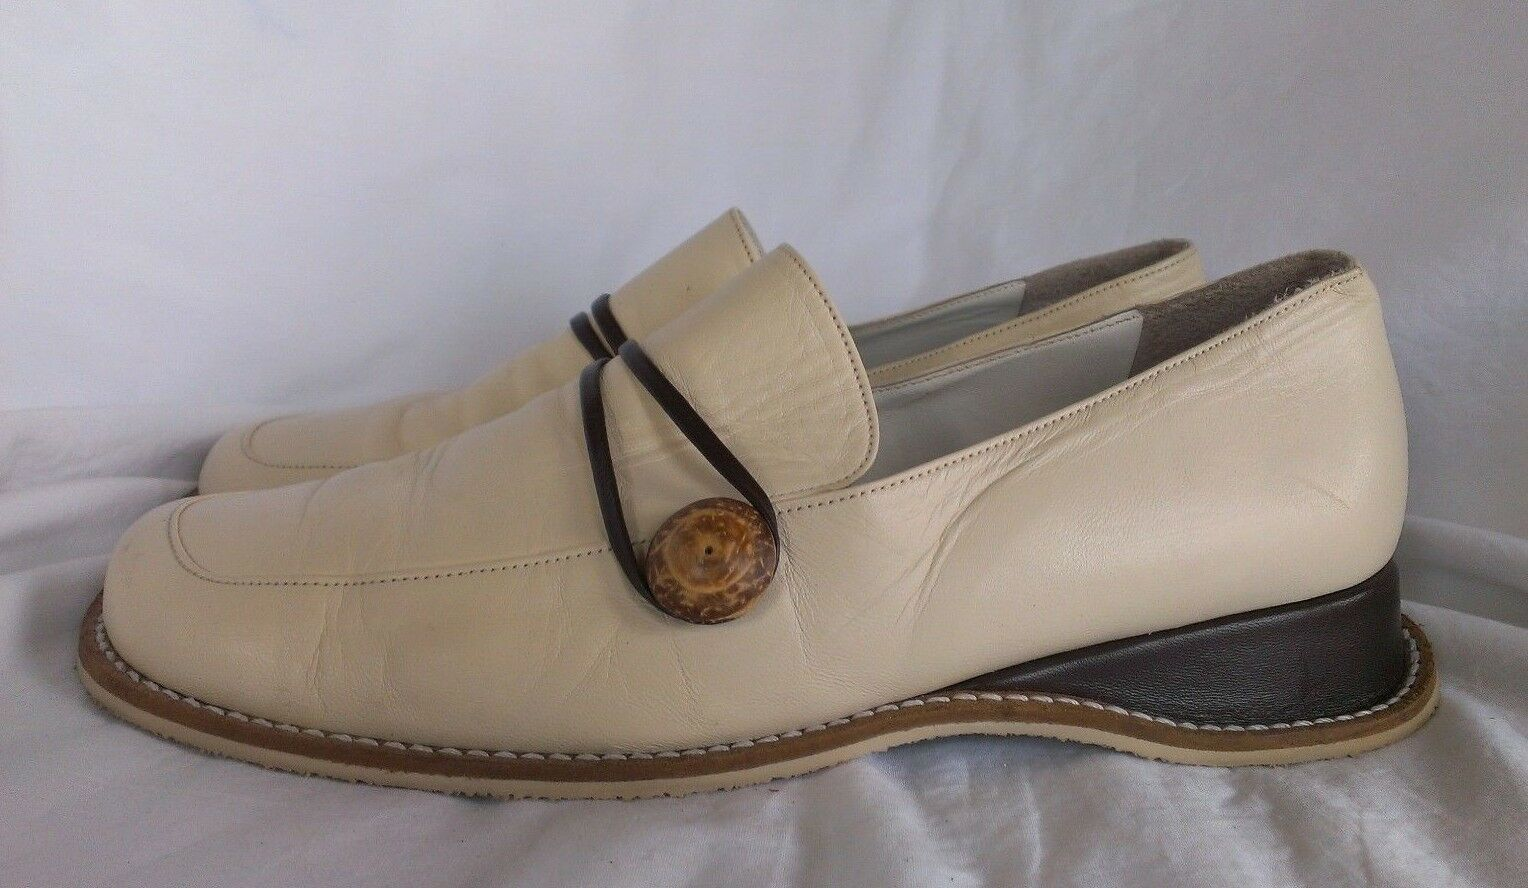 Renouard Plancoet Wouomo Bone bianca Tan Wooden Button Loafers Dimensione 41 - US 10.5